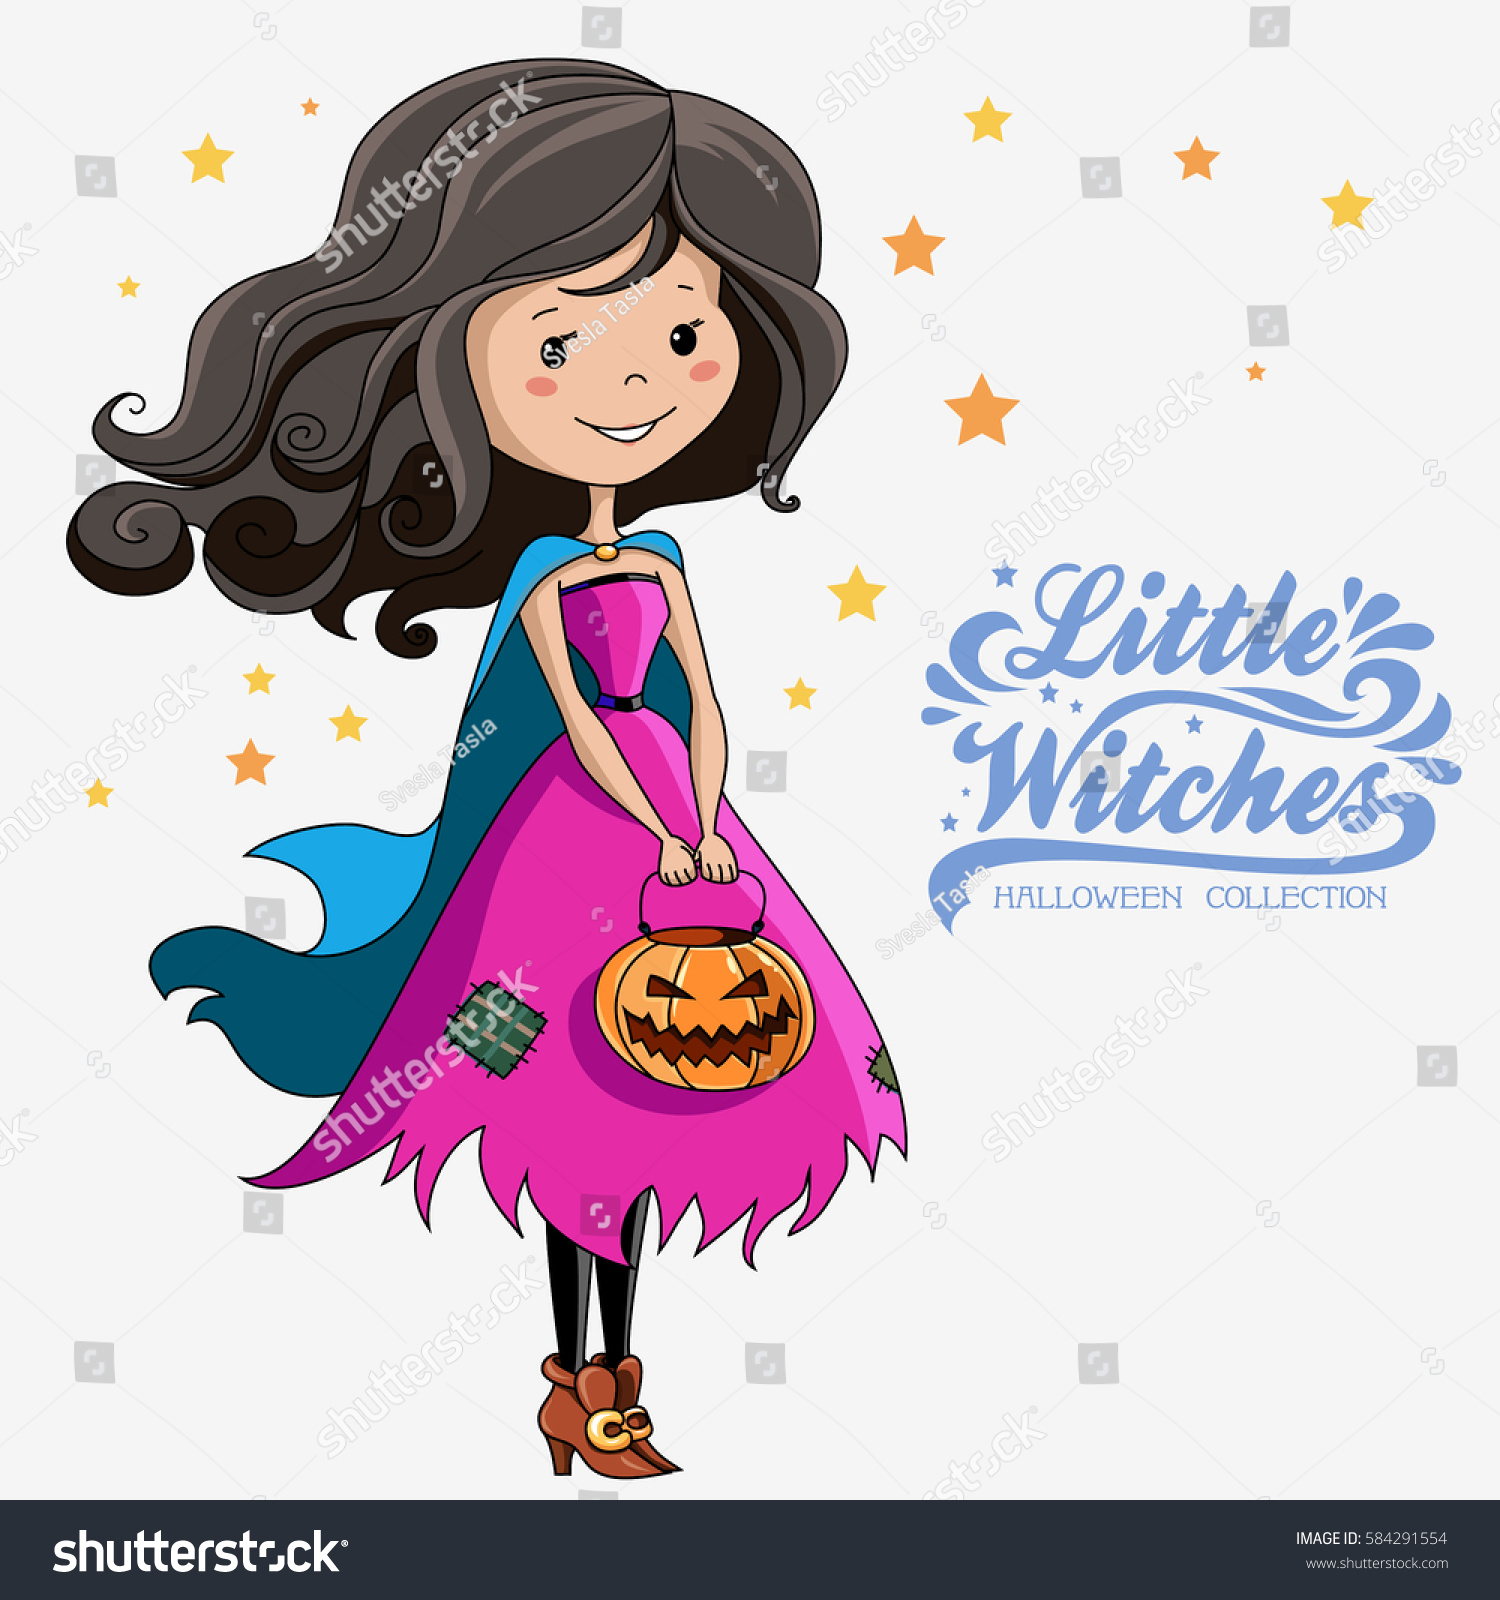 Uncategorized Witch Pictures To Print little witch halloween print on stock vector 584291554 t shirts bags stickers or